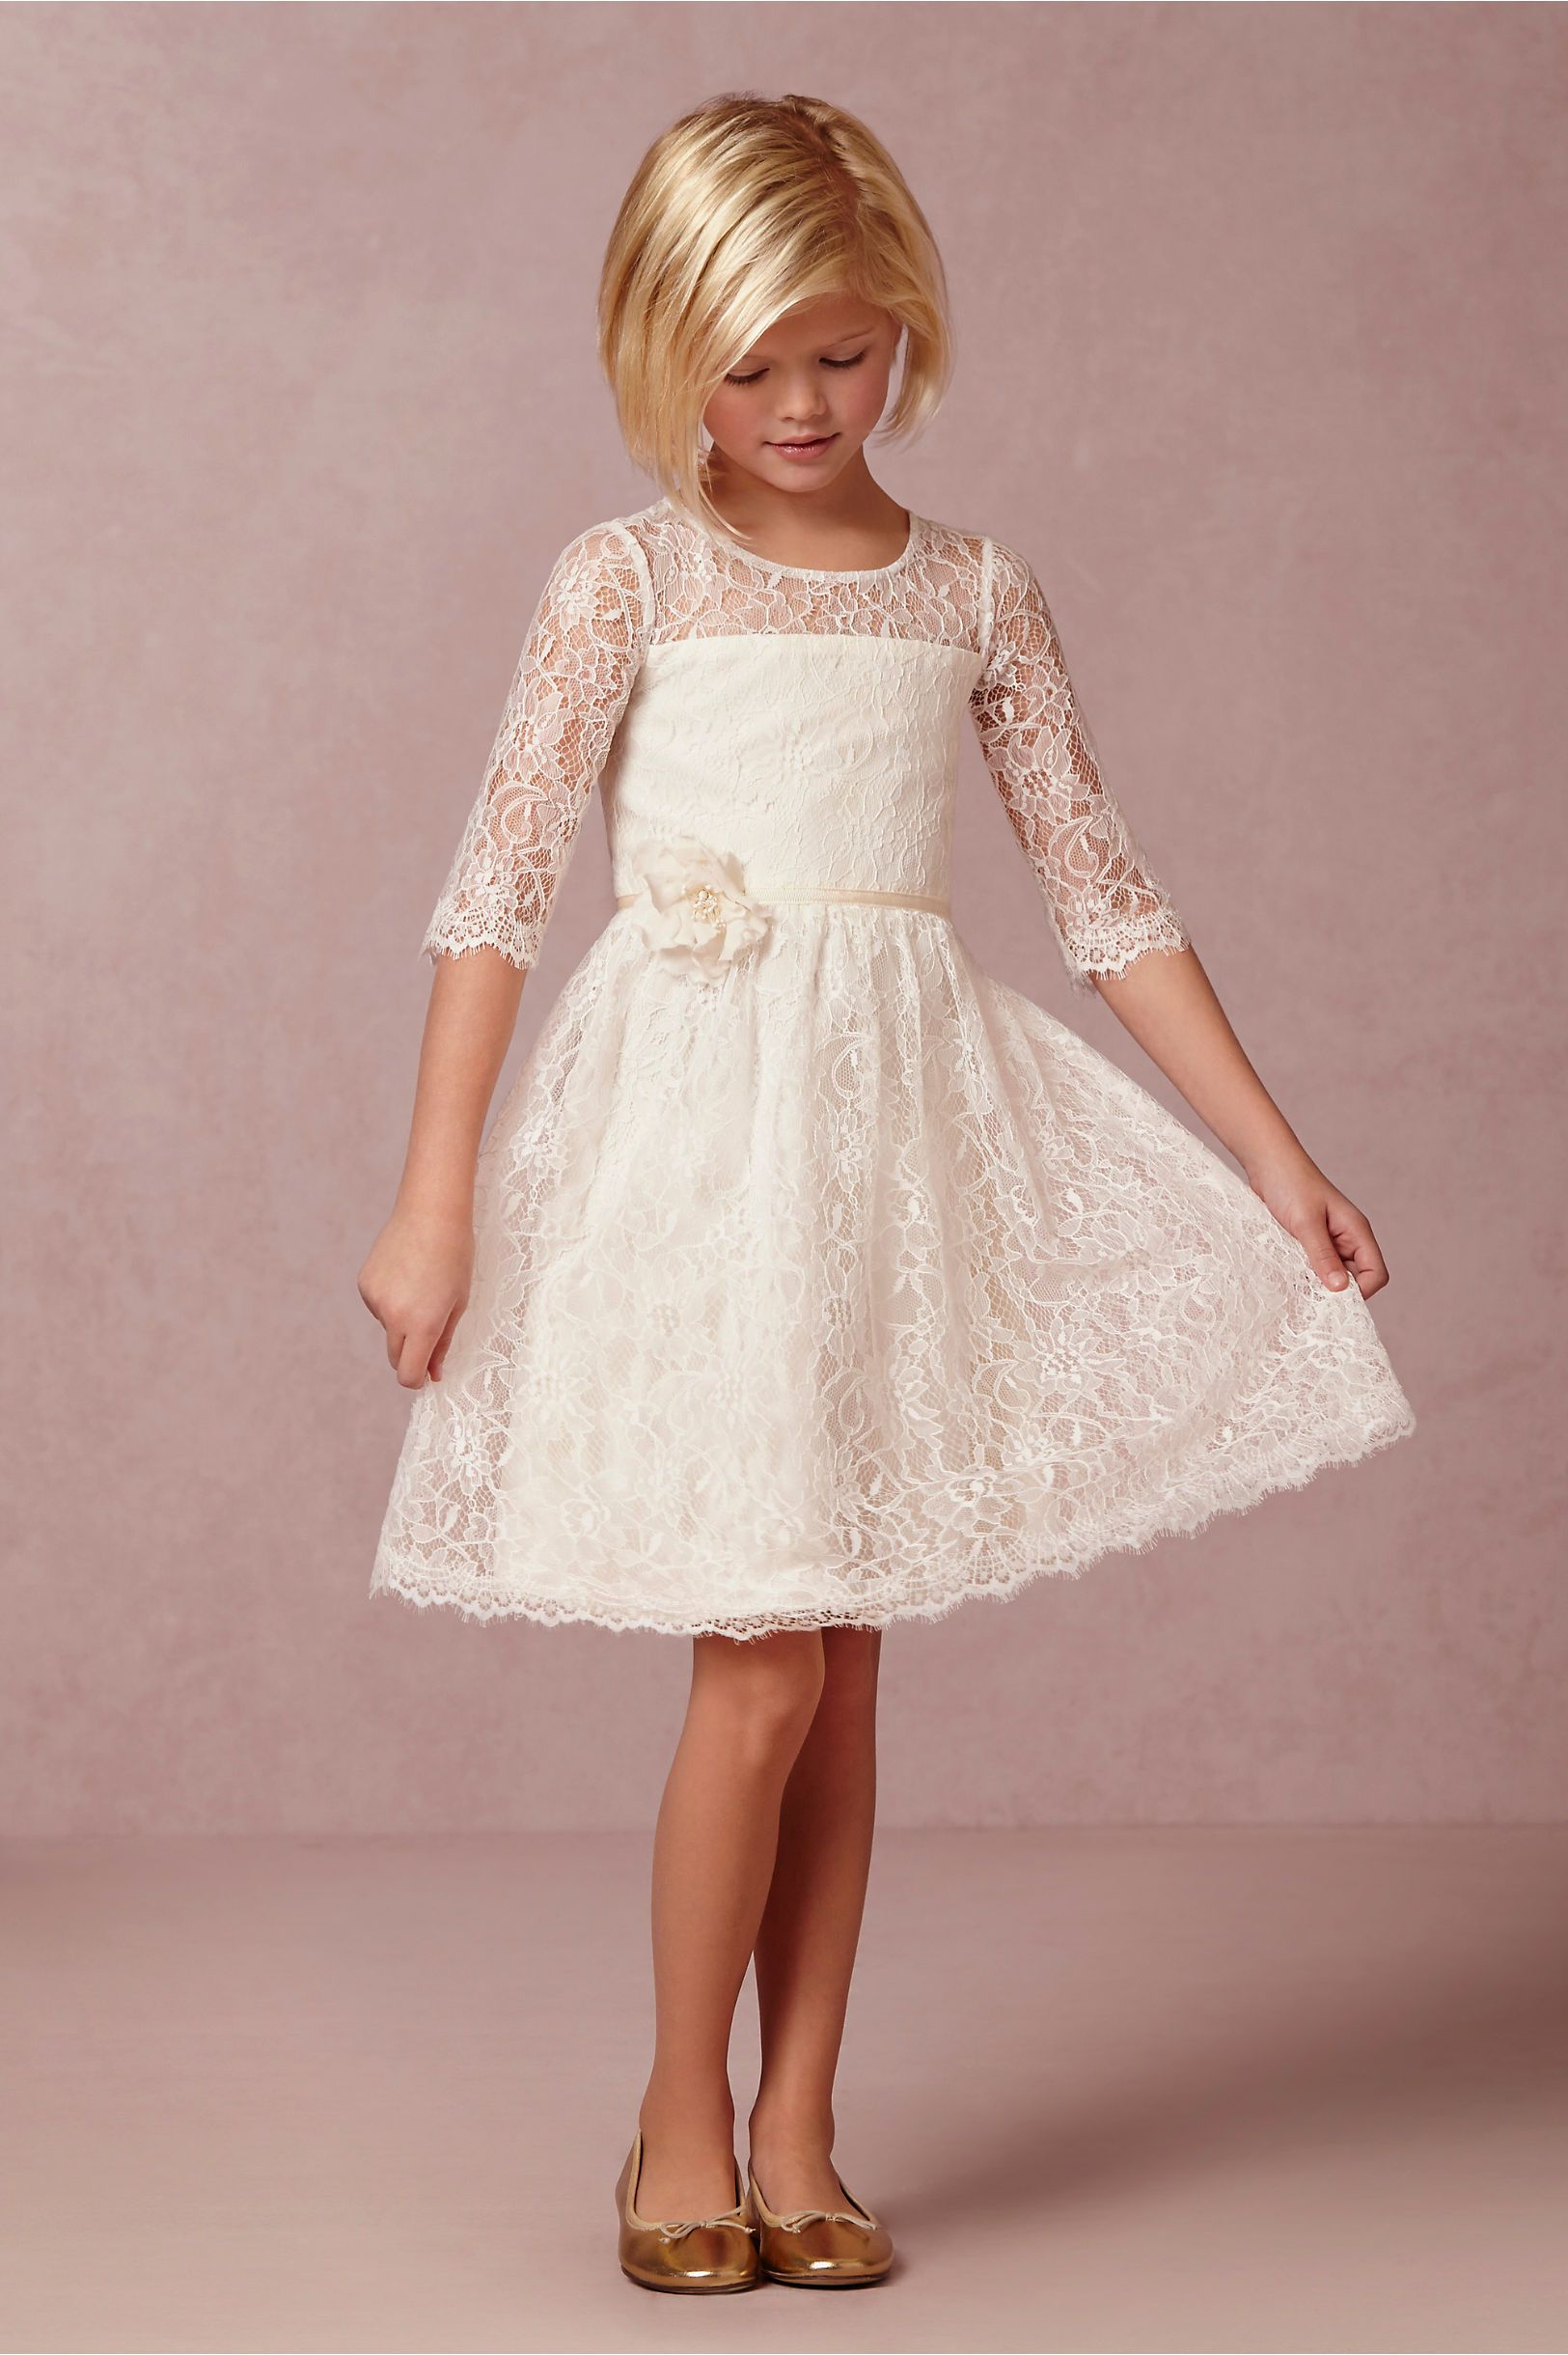 Lythwood loves this pretty little lace flower girl dress so cute